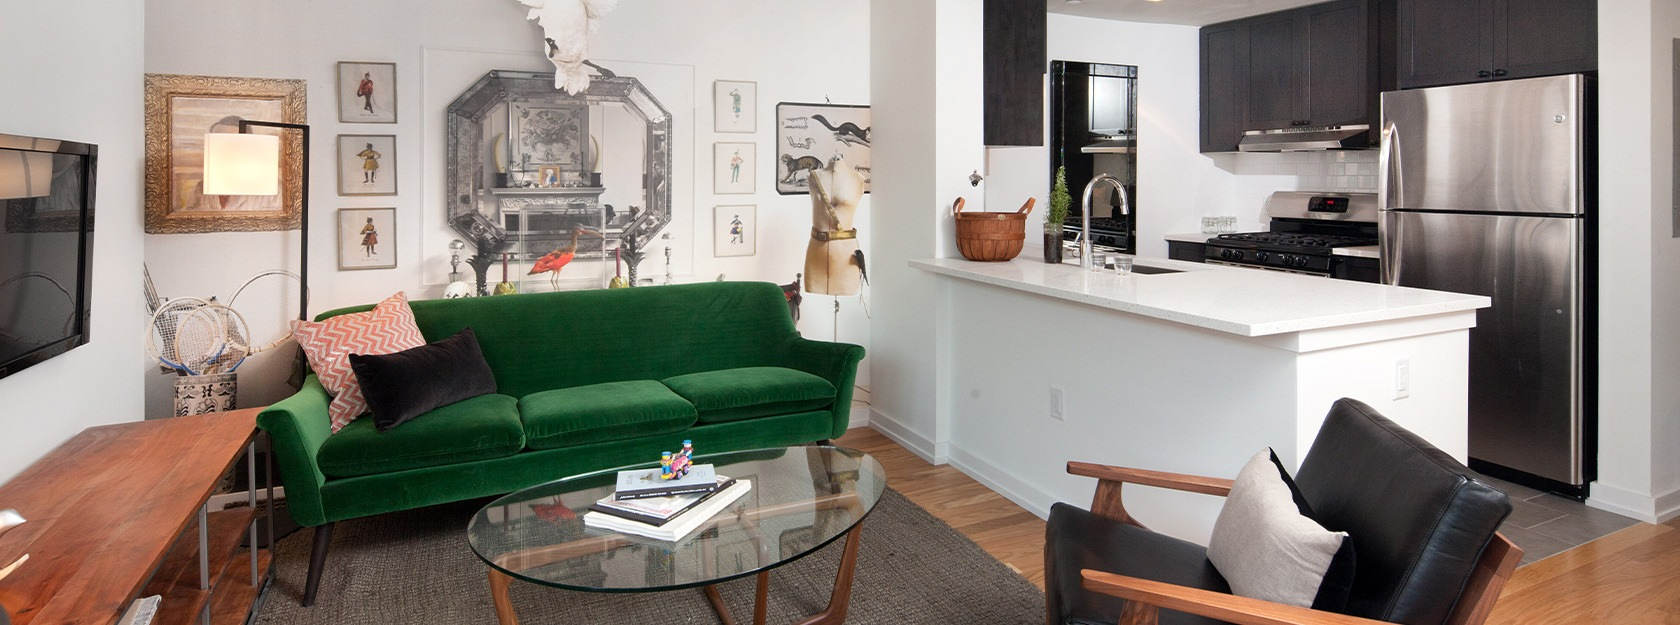 50 North 5th Apartments open living space and kitchen